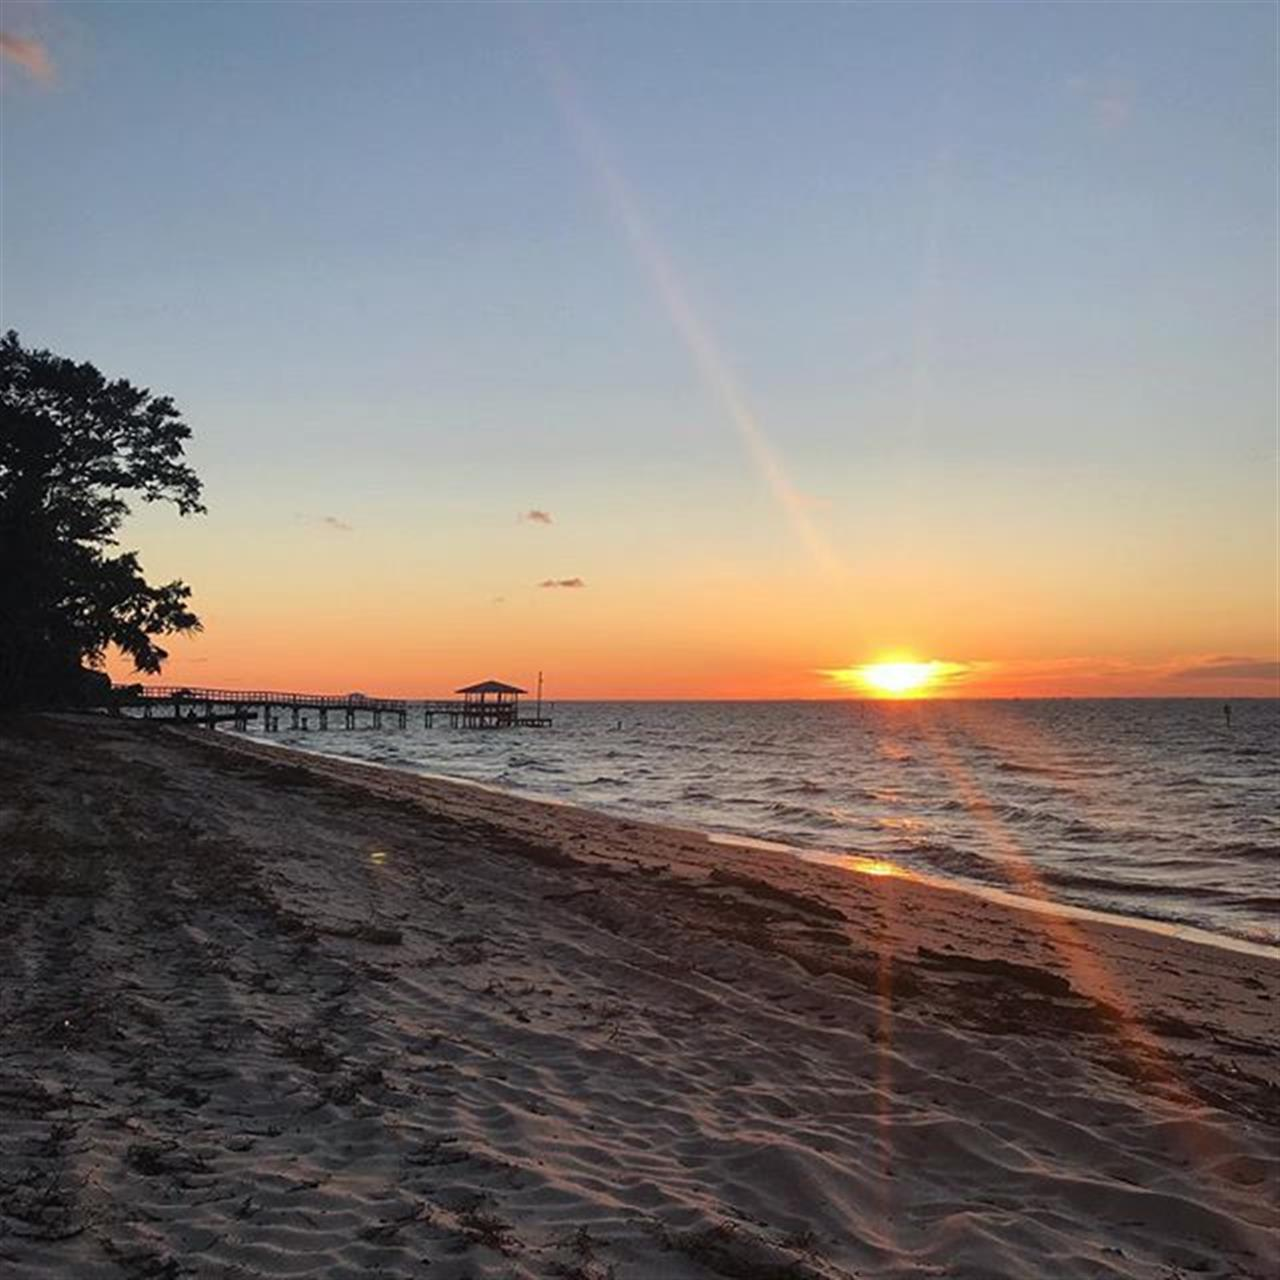 Beautiful sunsets on Mobile Bay this weekend. We are loving this Fall weather! Happy Sunday from Fairhope, AL. #LetsJoinForces ??? . . . . . ?: @annaphillips1 . BellatorAL.com // #leadingrelocal #fairhopealabama #sunsets #realtors #realestate #realestateagent #investors #broker #communitystrong #baldwincounty #alabama #thisisalabama #lovelocal #mobilebay #waterfront #publicbeach #relocationservices #leadingrealestatecompaniesoftheworld #mobileal #bellatorrealestate